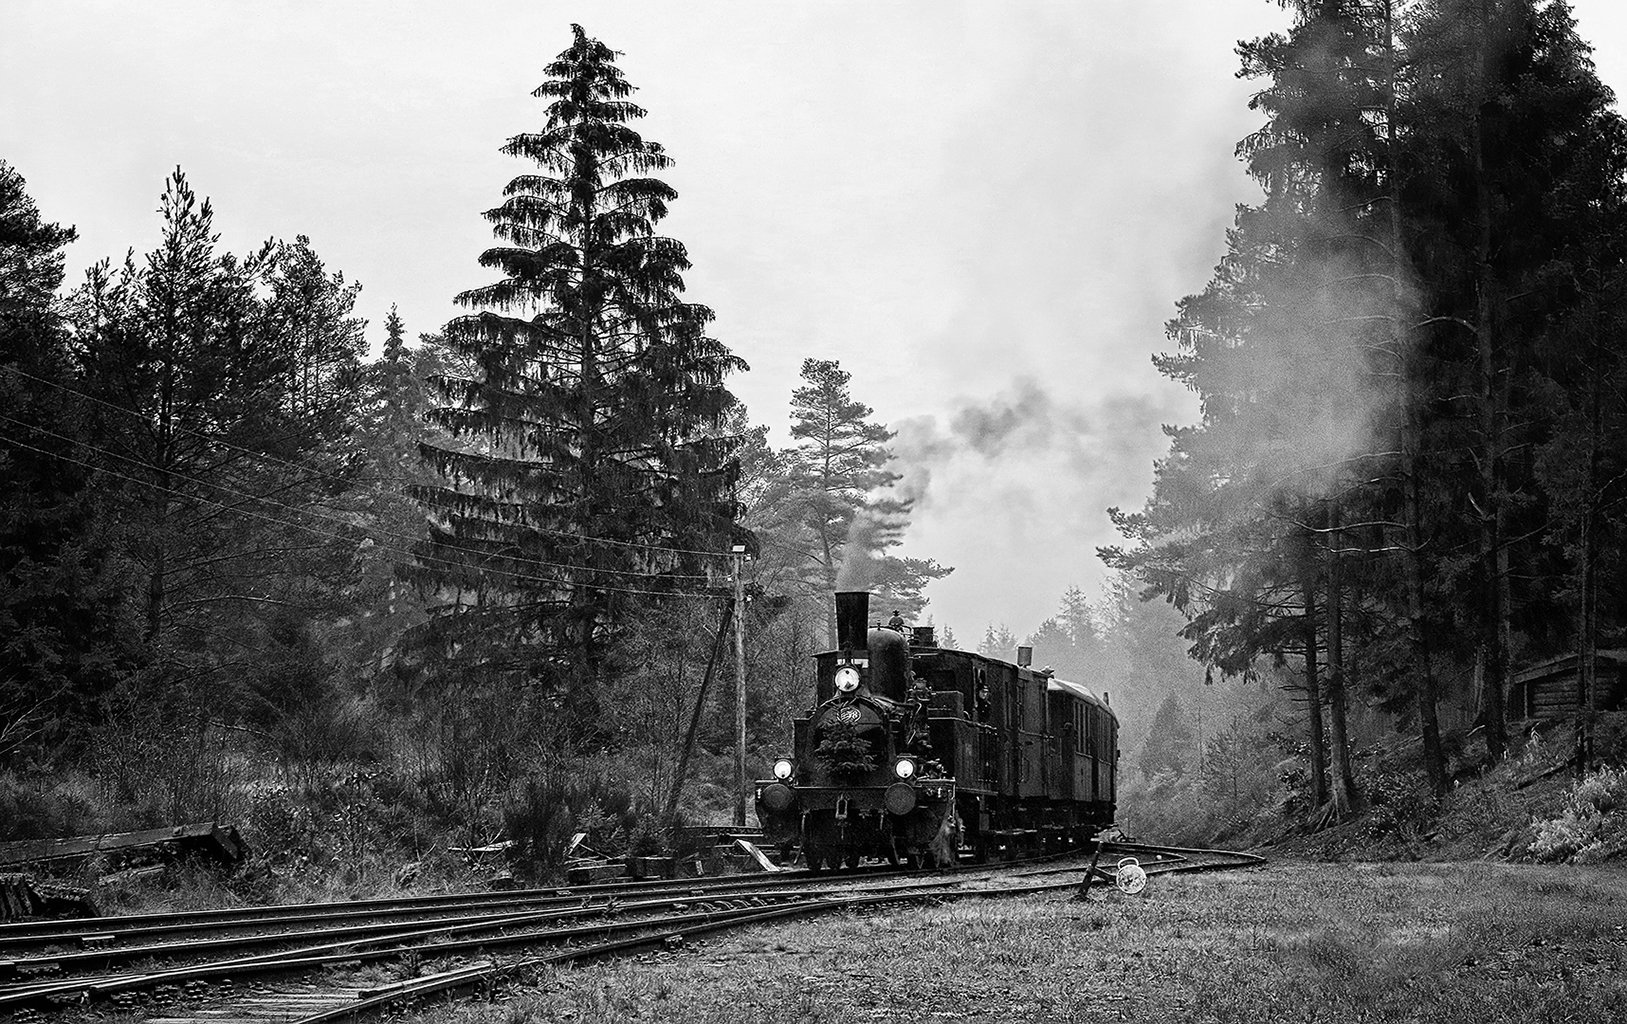 Steam_train 531BW